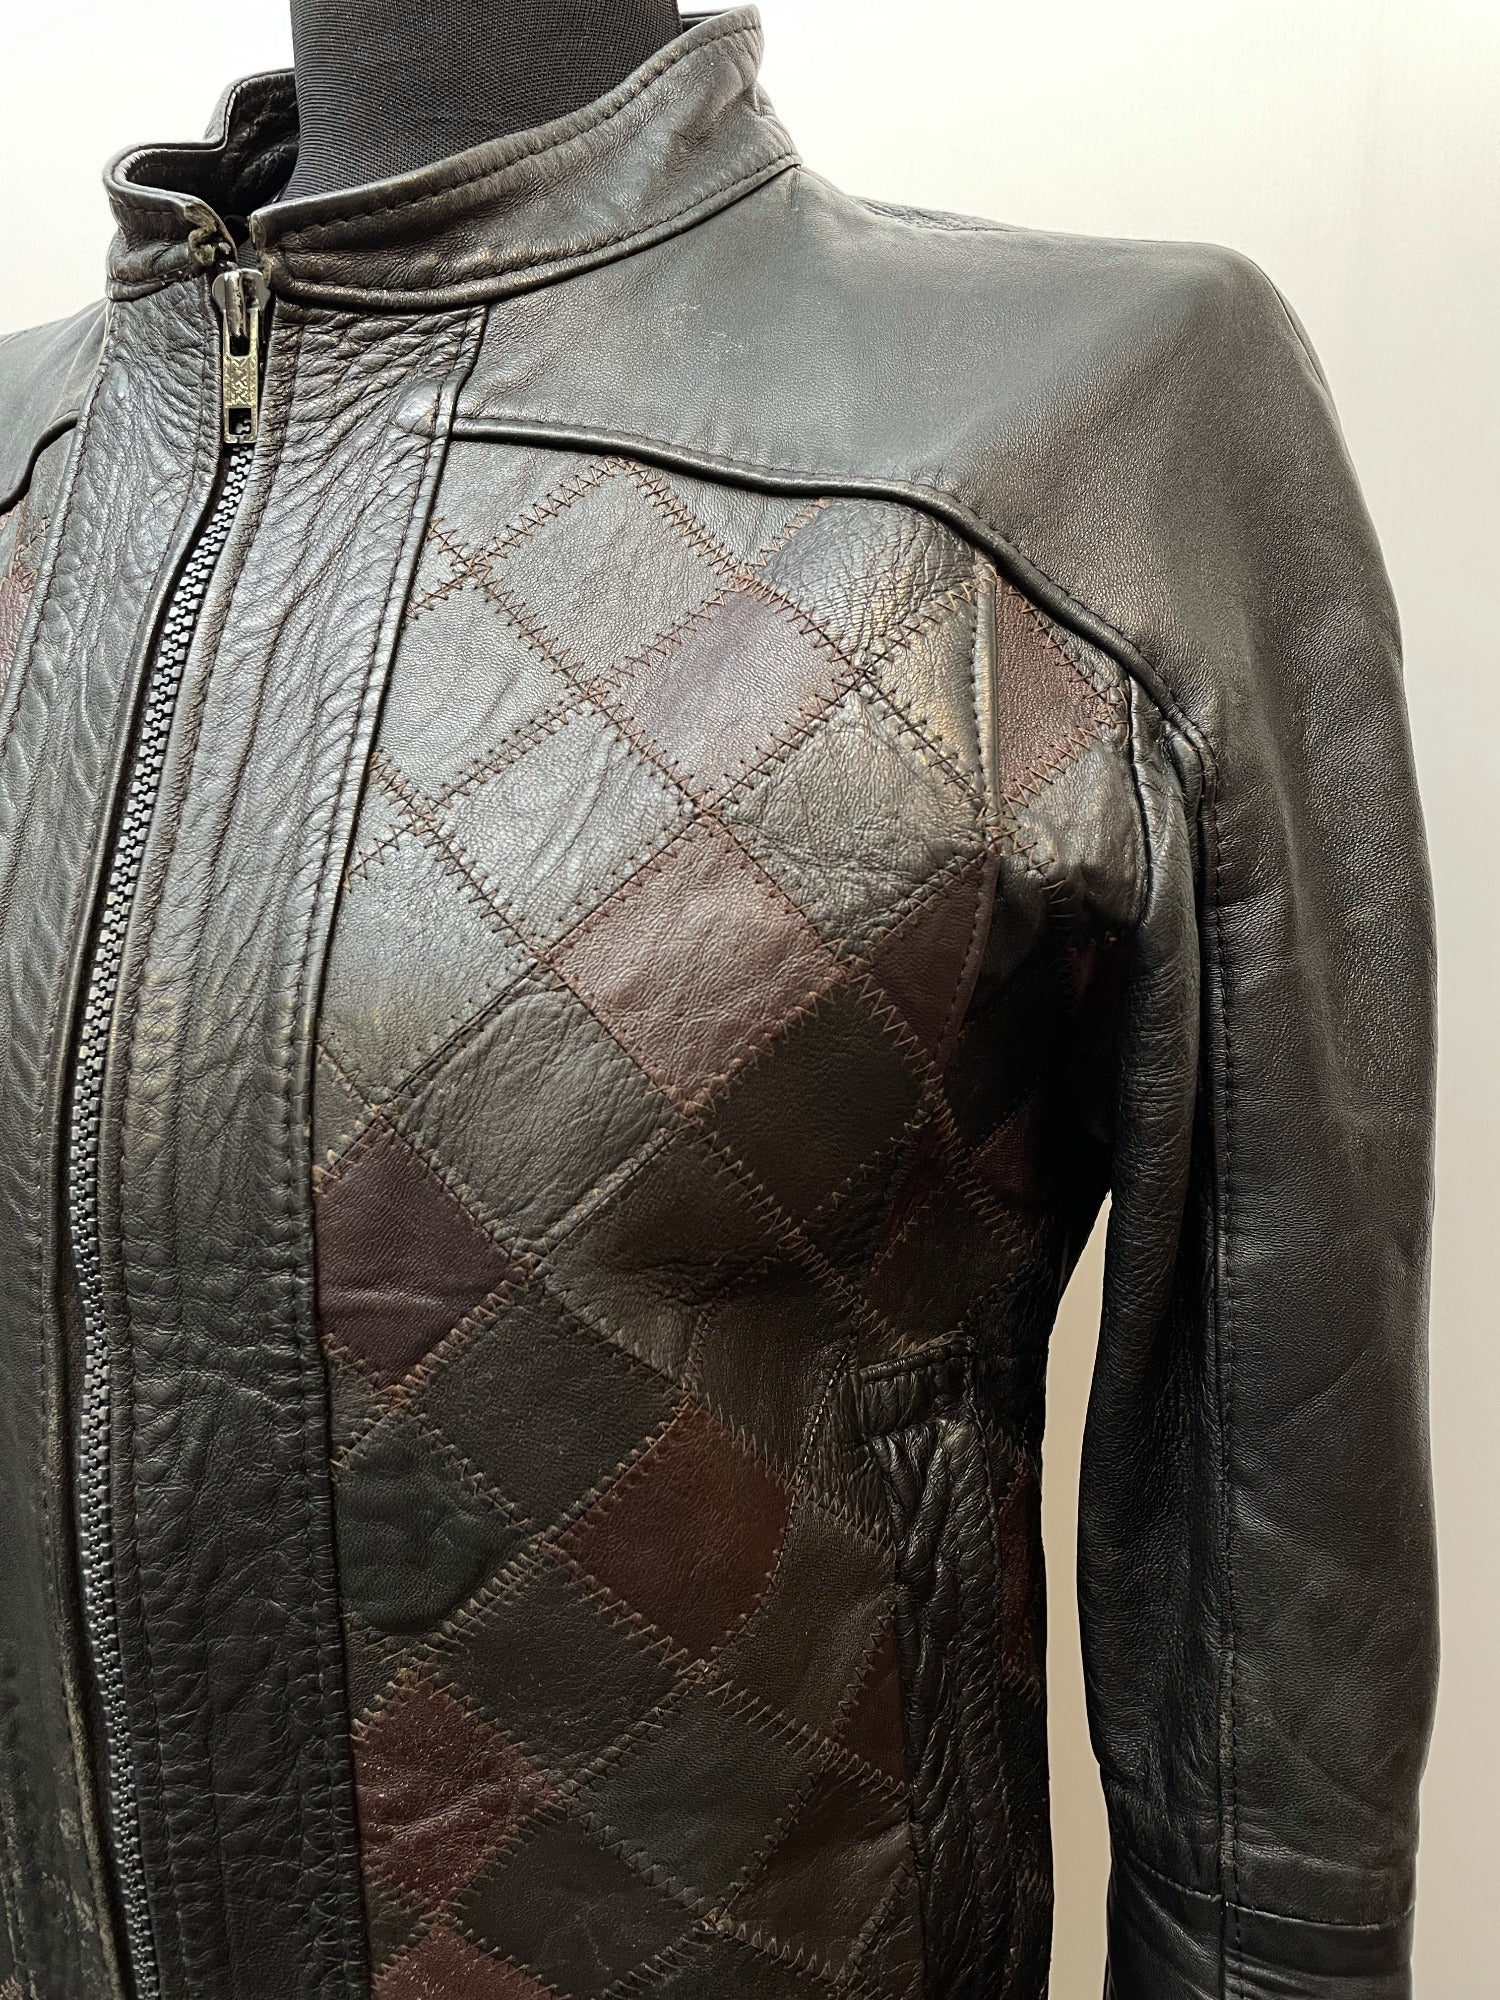 womens jacket  womens coat  womens  vintage  Urban Village Vintage  patterned  patchwork  Leather Jacket  Leather Coat  Leather  Jacket  cropped  8-10  8  70s  1970s